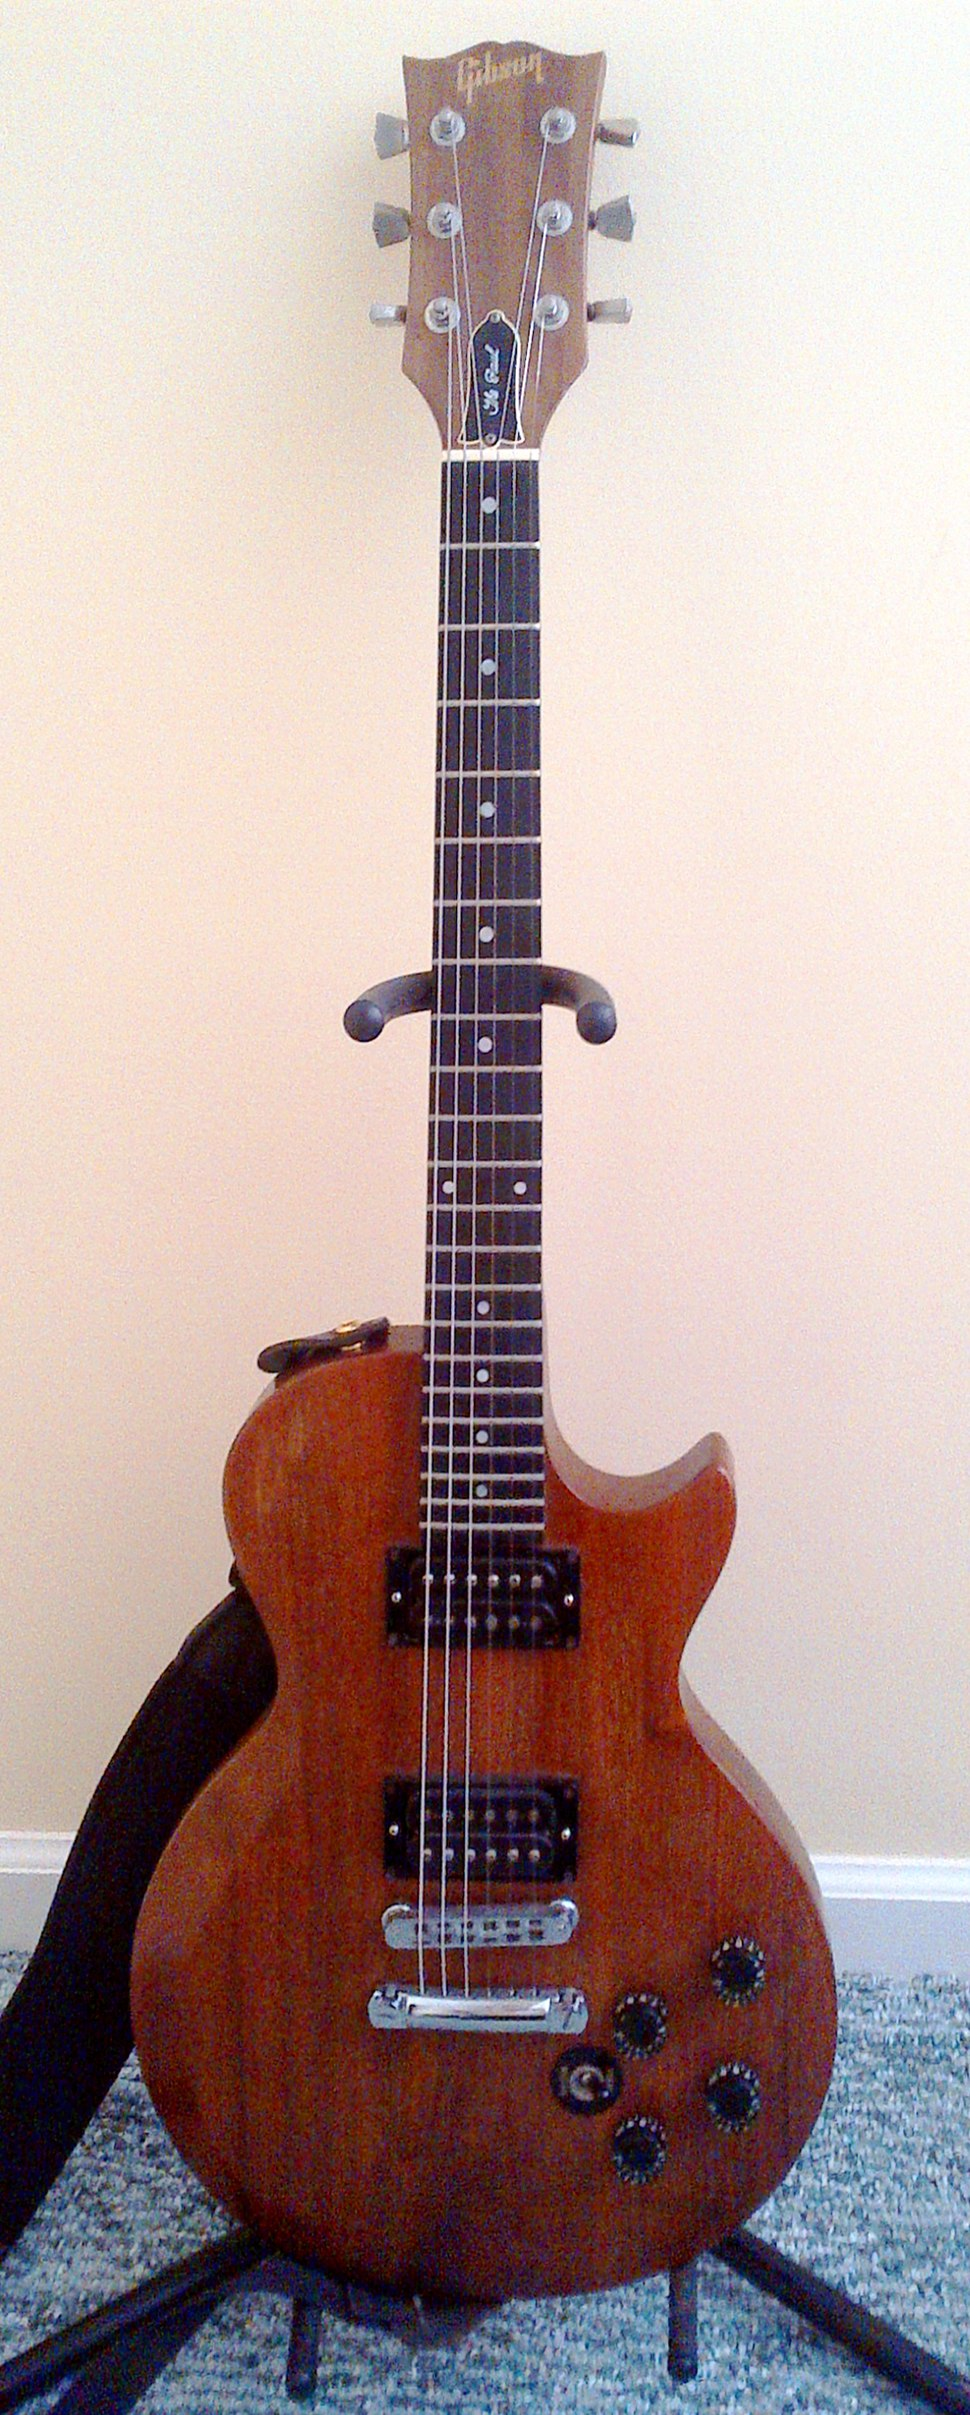 Gibson Les Paul Howling Pixel Classic 3pickup Electric Guitar With Case The Edit1 Clip2